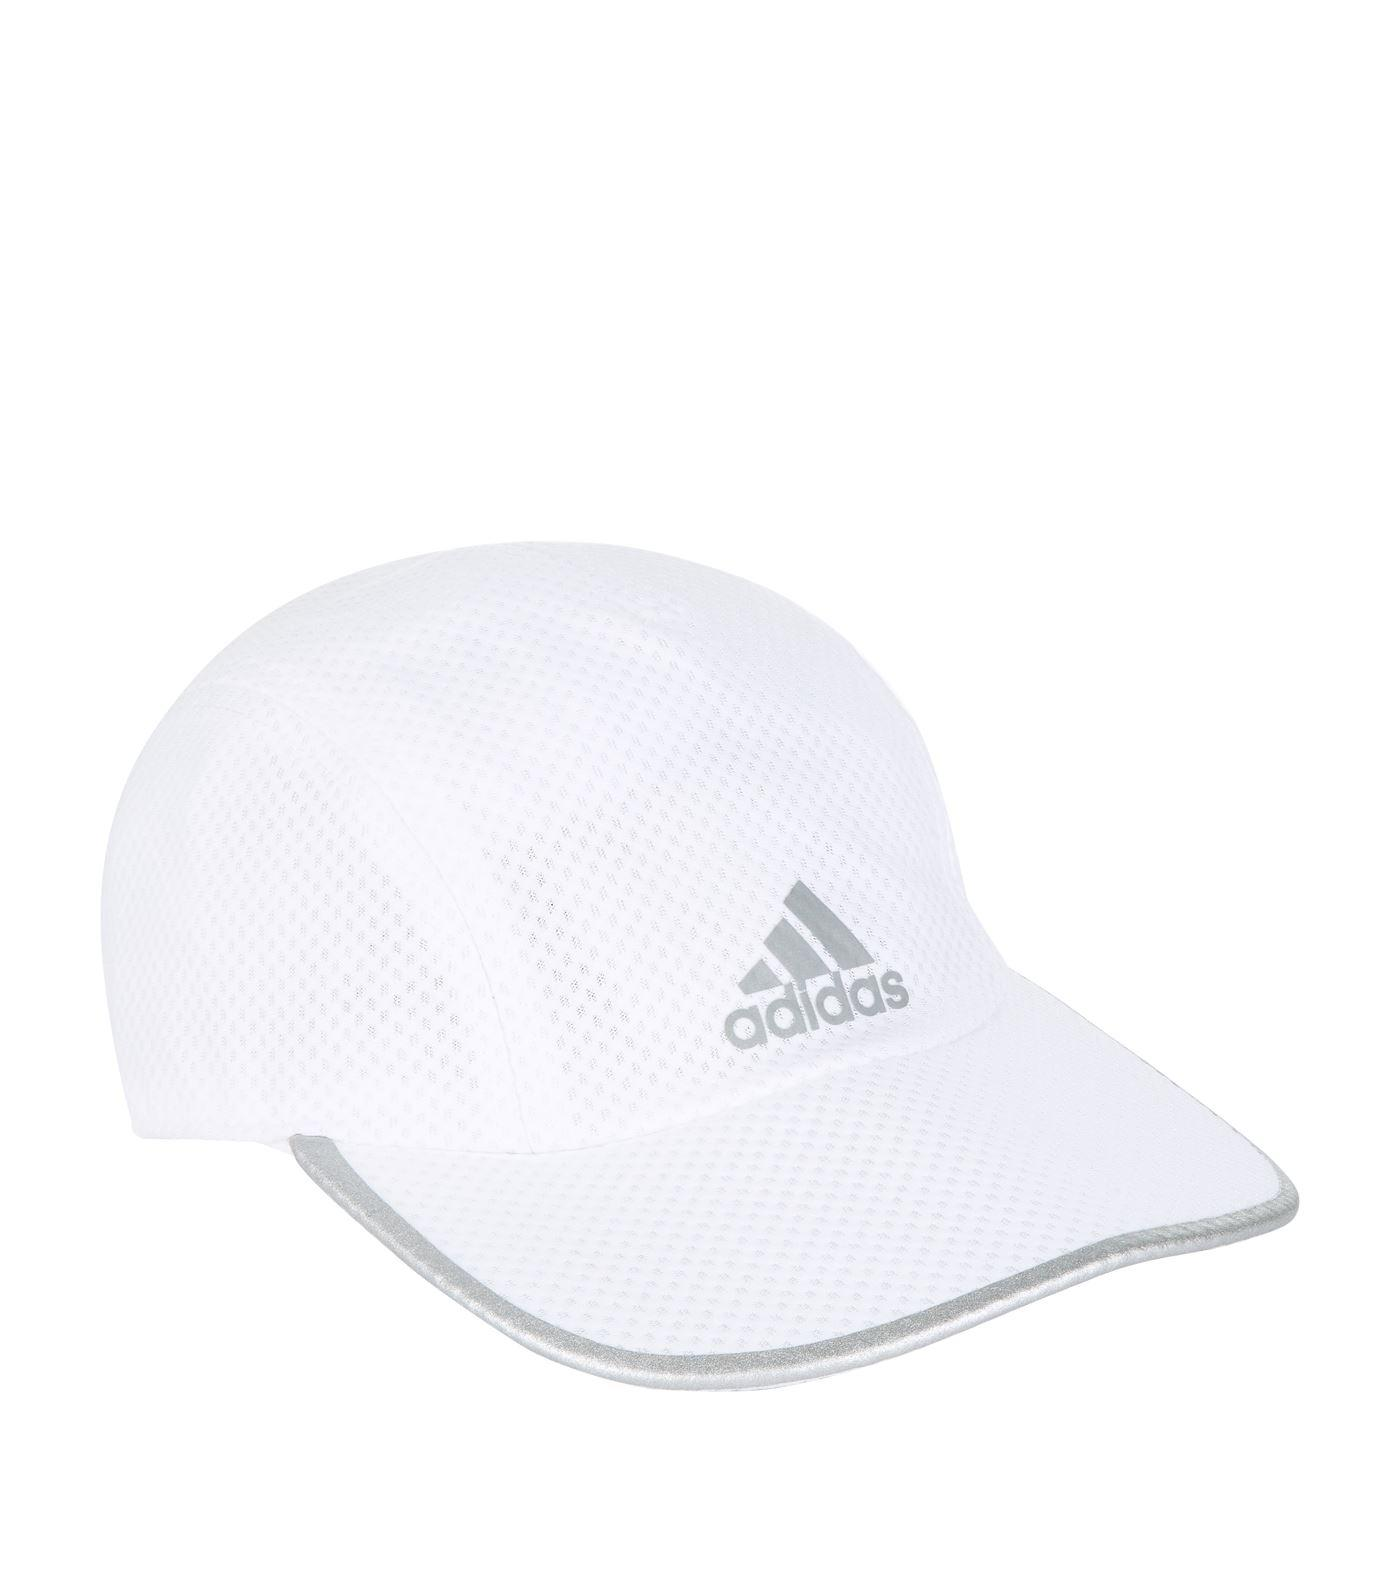 feaac6e7e3c3 Lyst - adidas Climacool Running Cap in White for Men